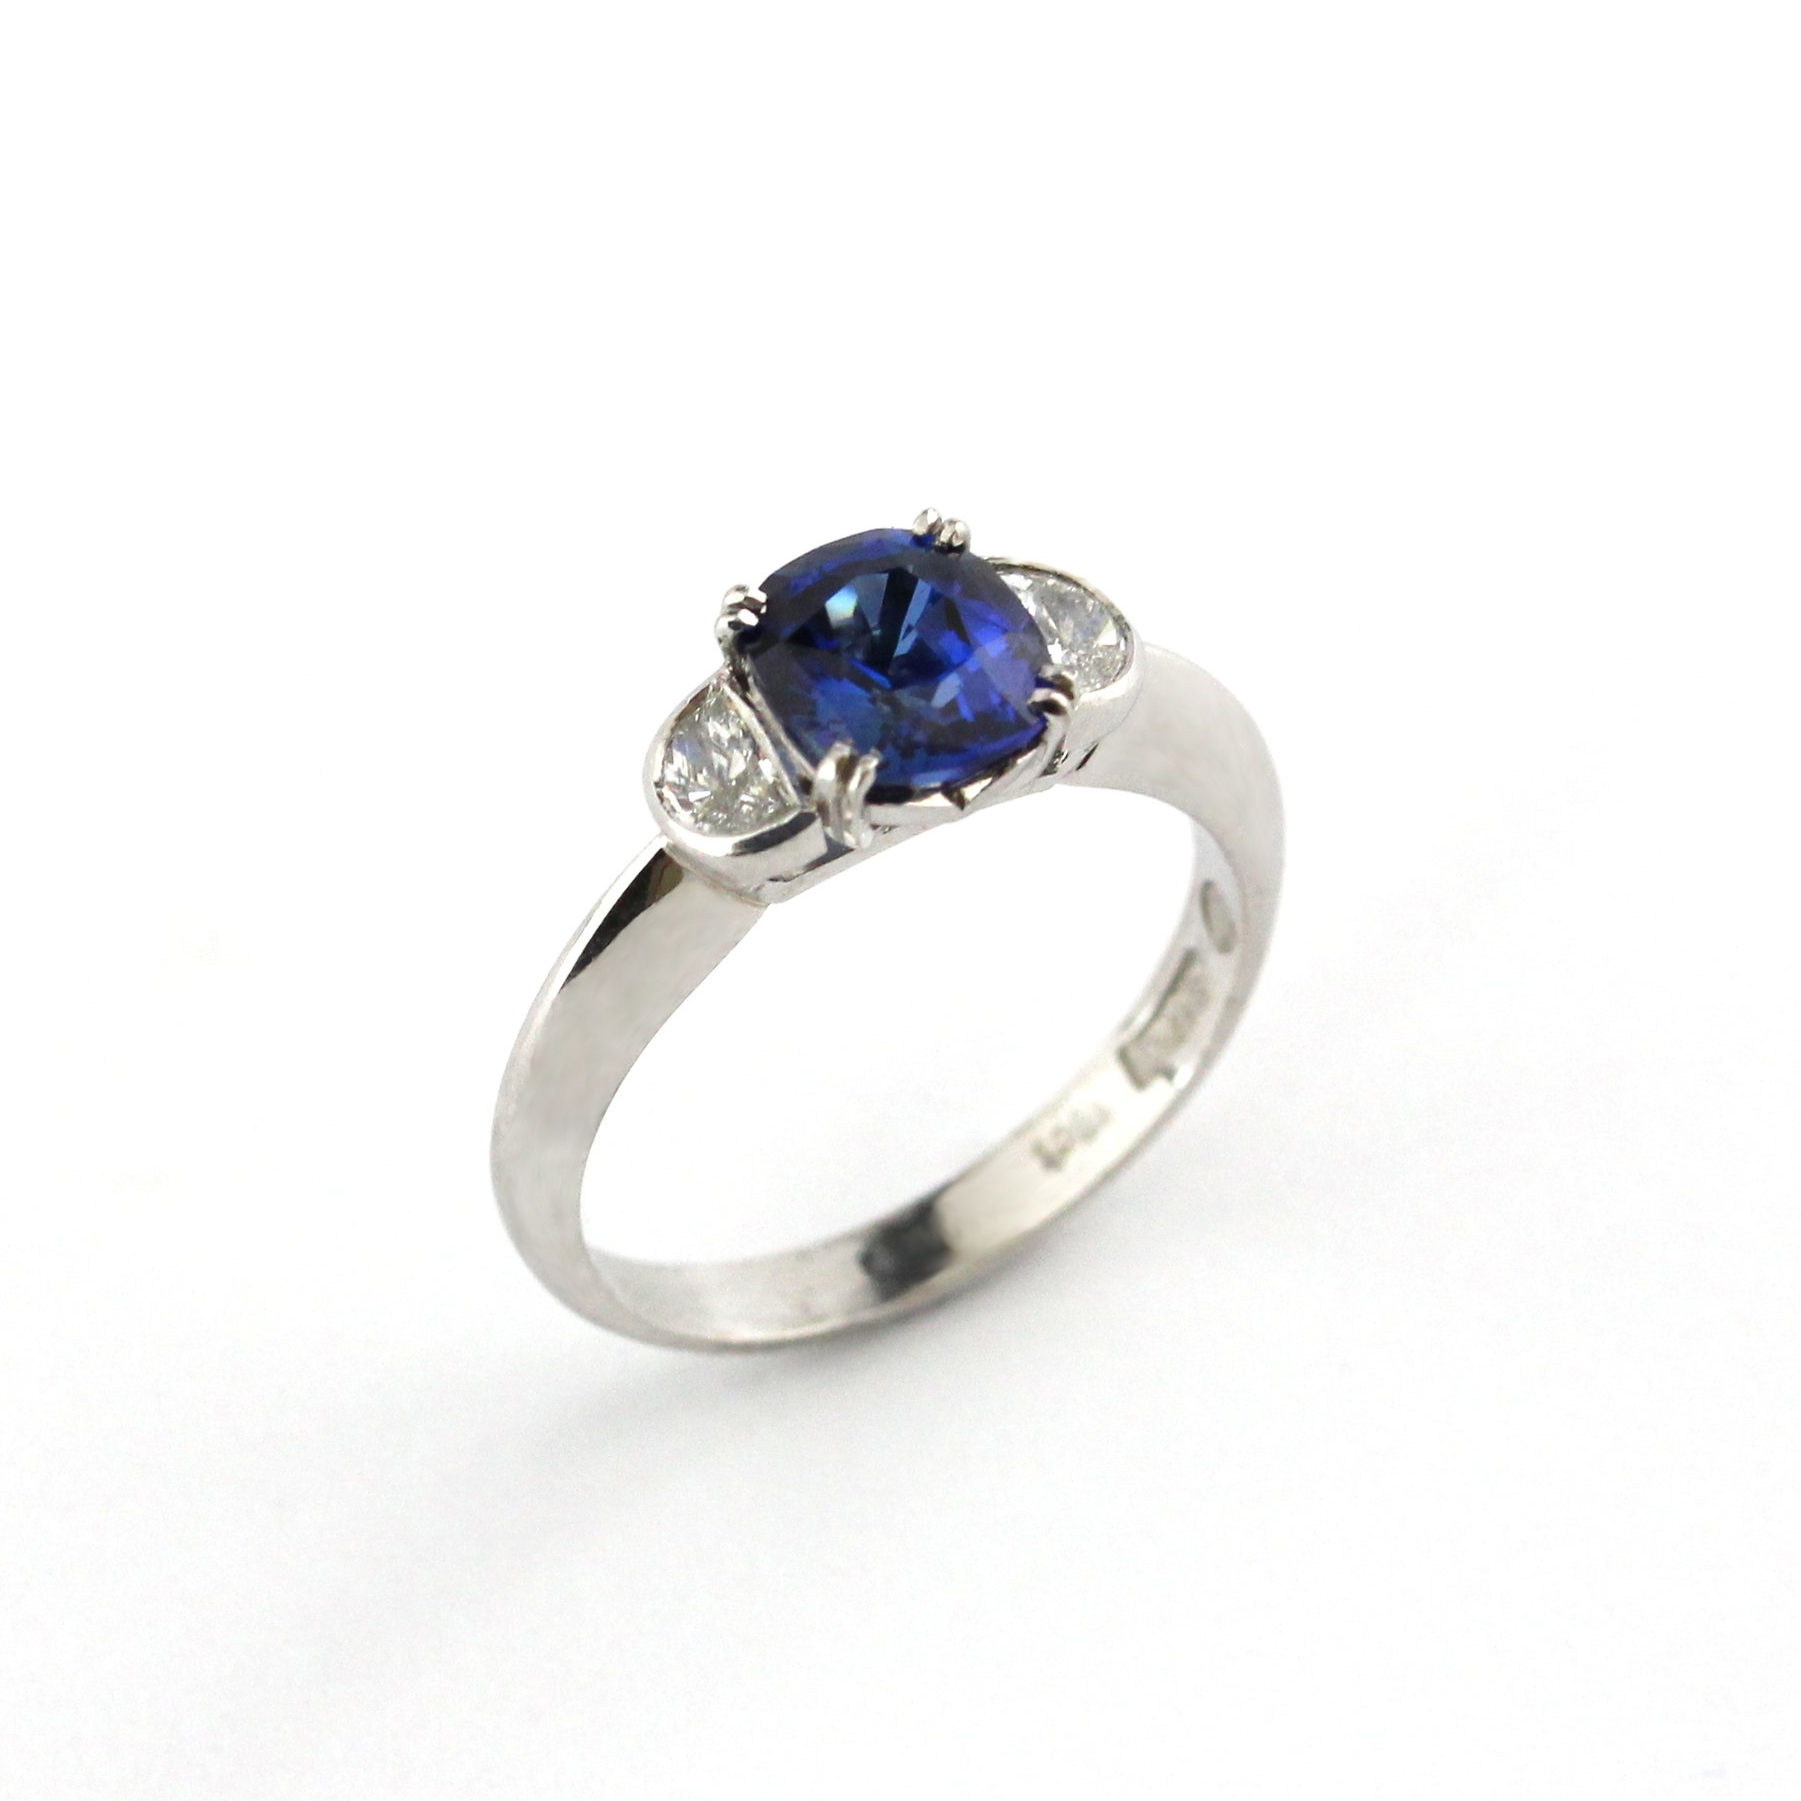 Double claw set sapphire white gold ring with crescent diamond bezel set shoulders.